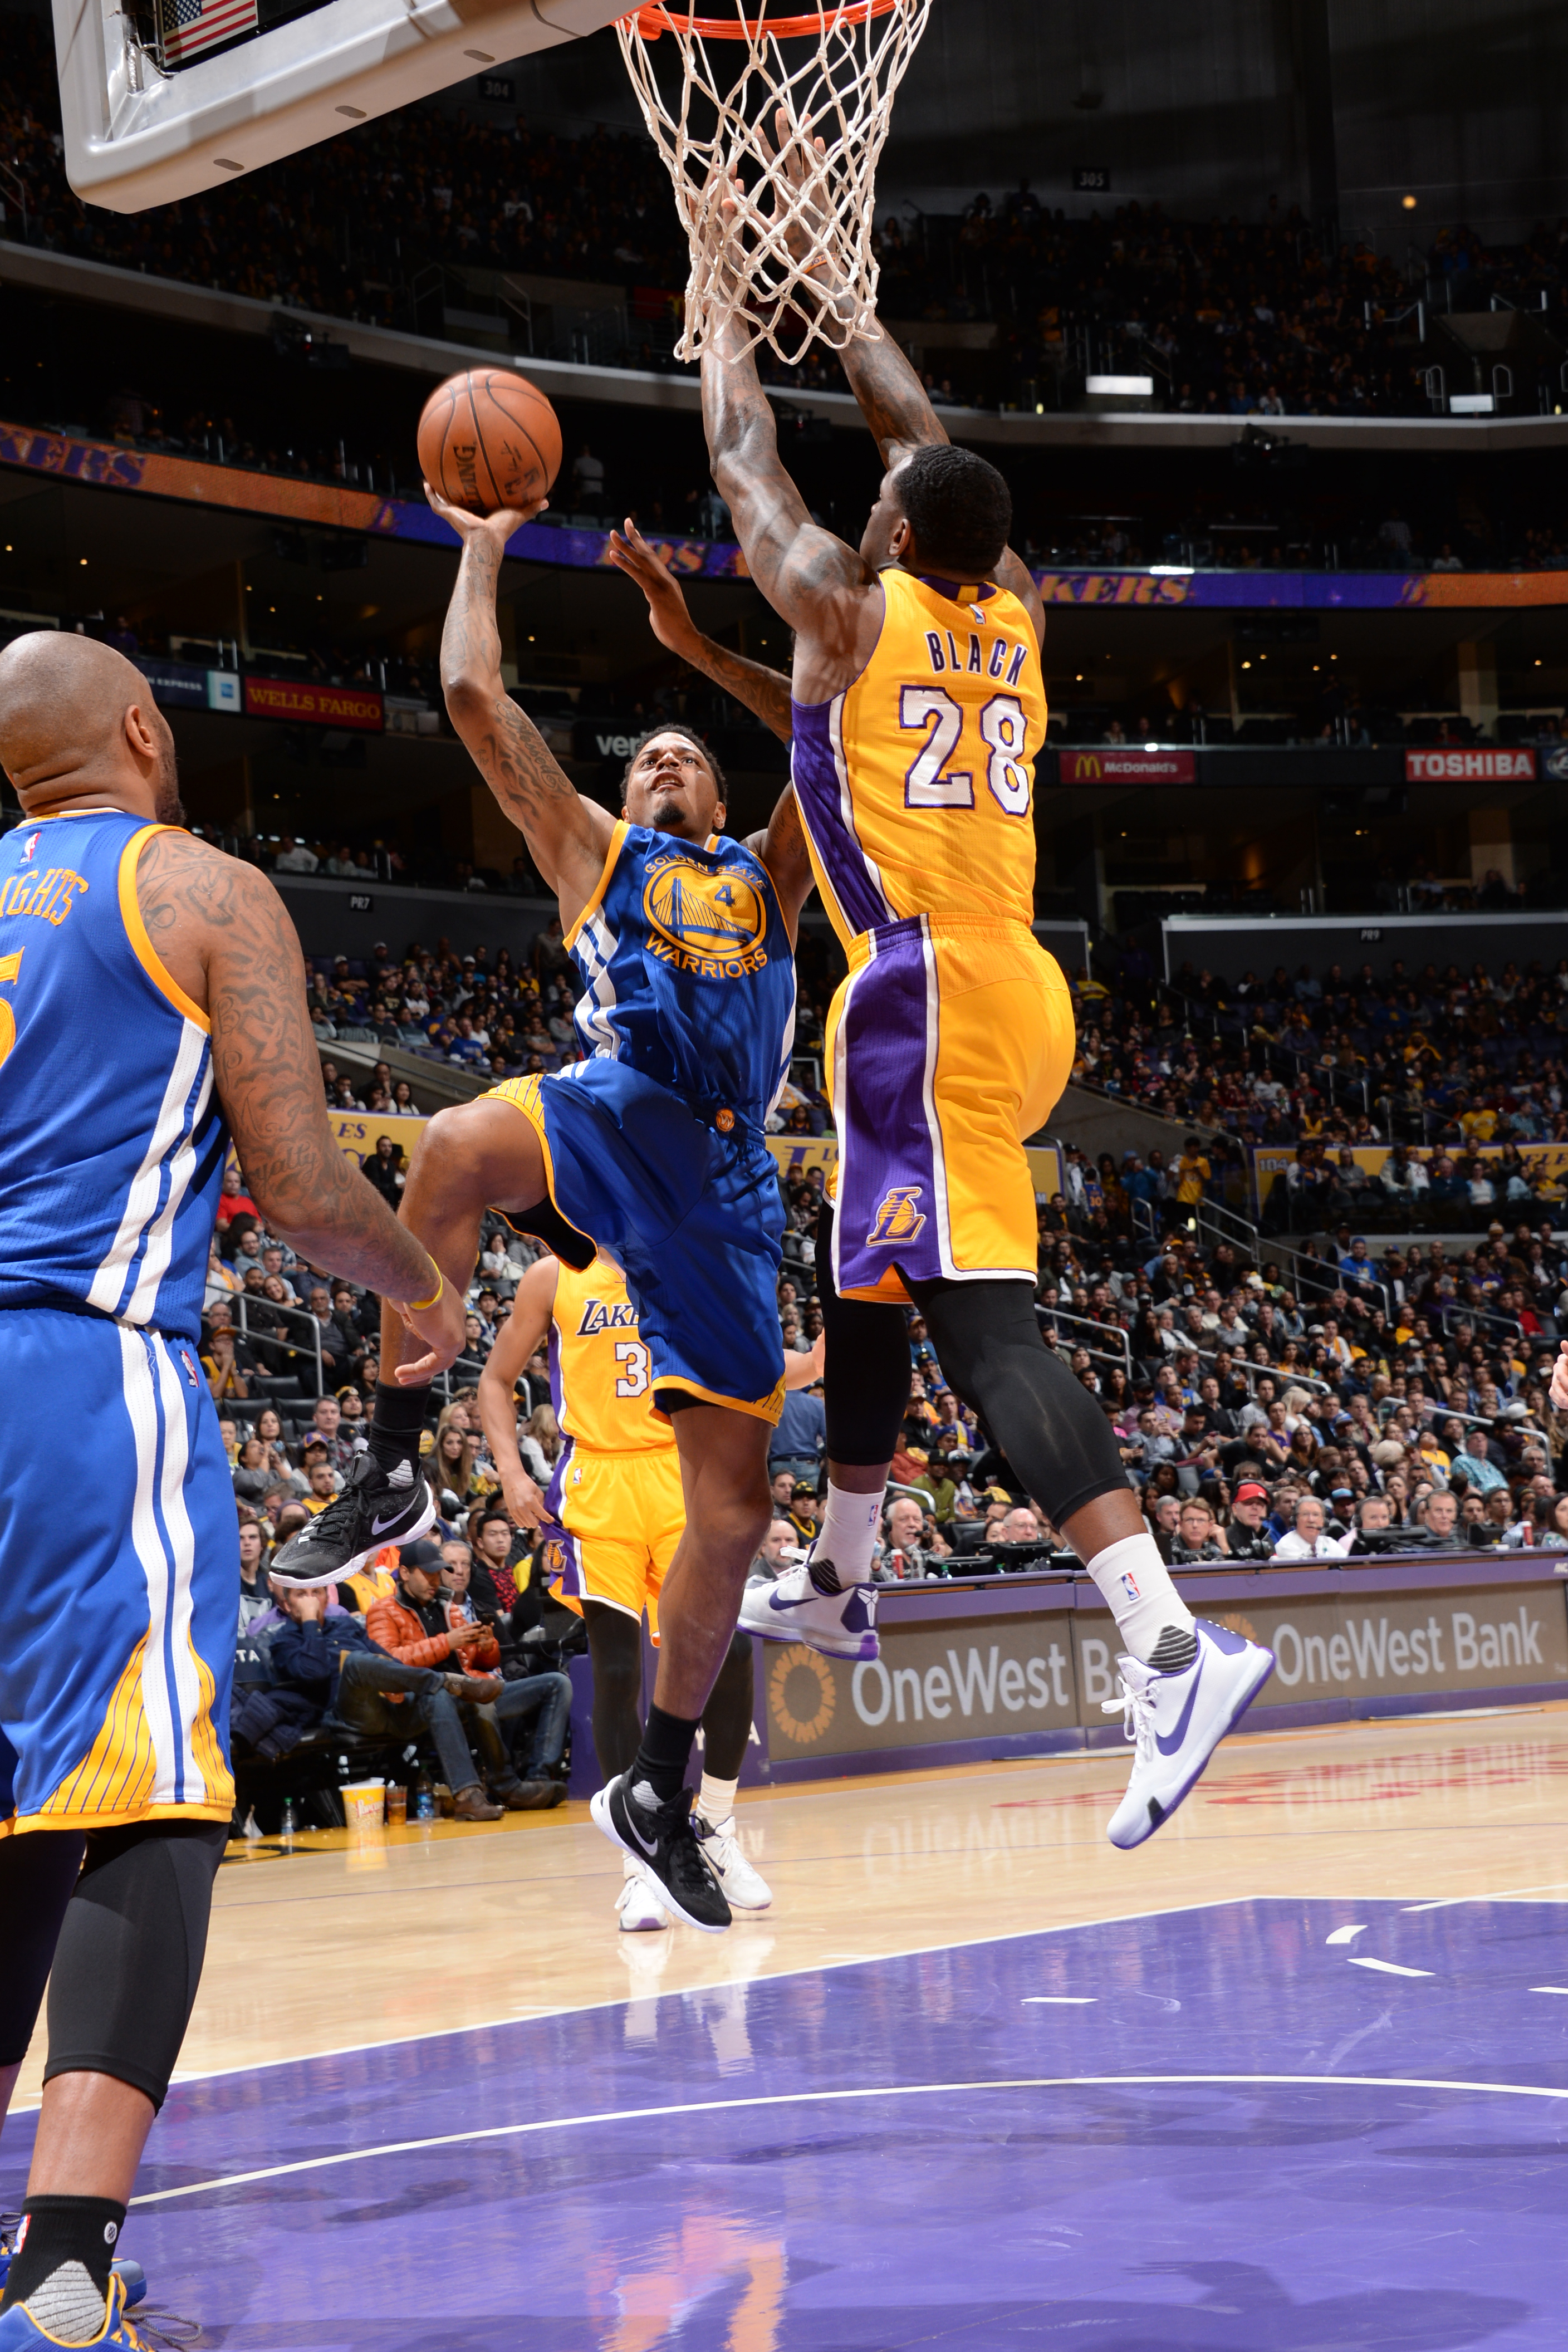 LOS ANGELES, CA - JANUARY 5: Brandon Rush #4 of the Golden State Warriors goes for the lay up against Tarik Black #28 of the Los Angeles Lakers during the game on January 5, 2016 at STAPLES Center in Los Angeles, California. (Photo by Andrew Bernstein/NBA